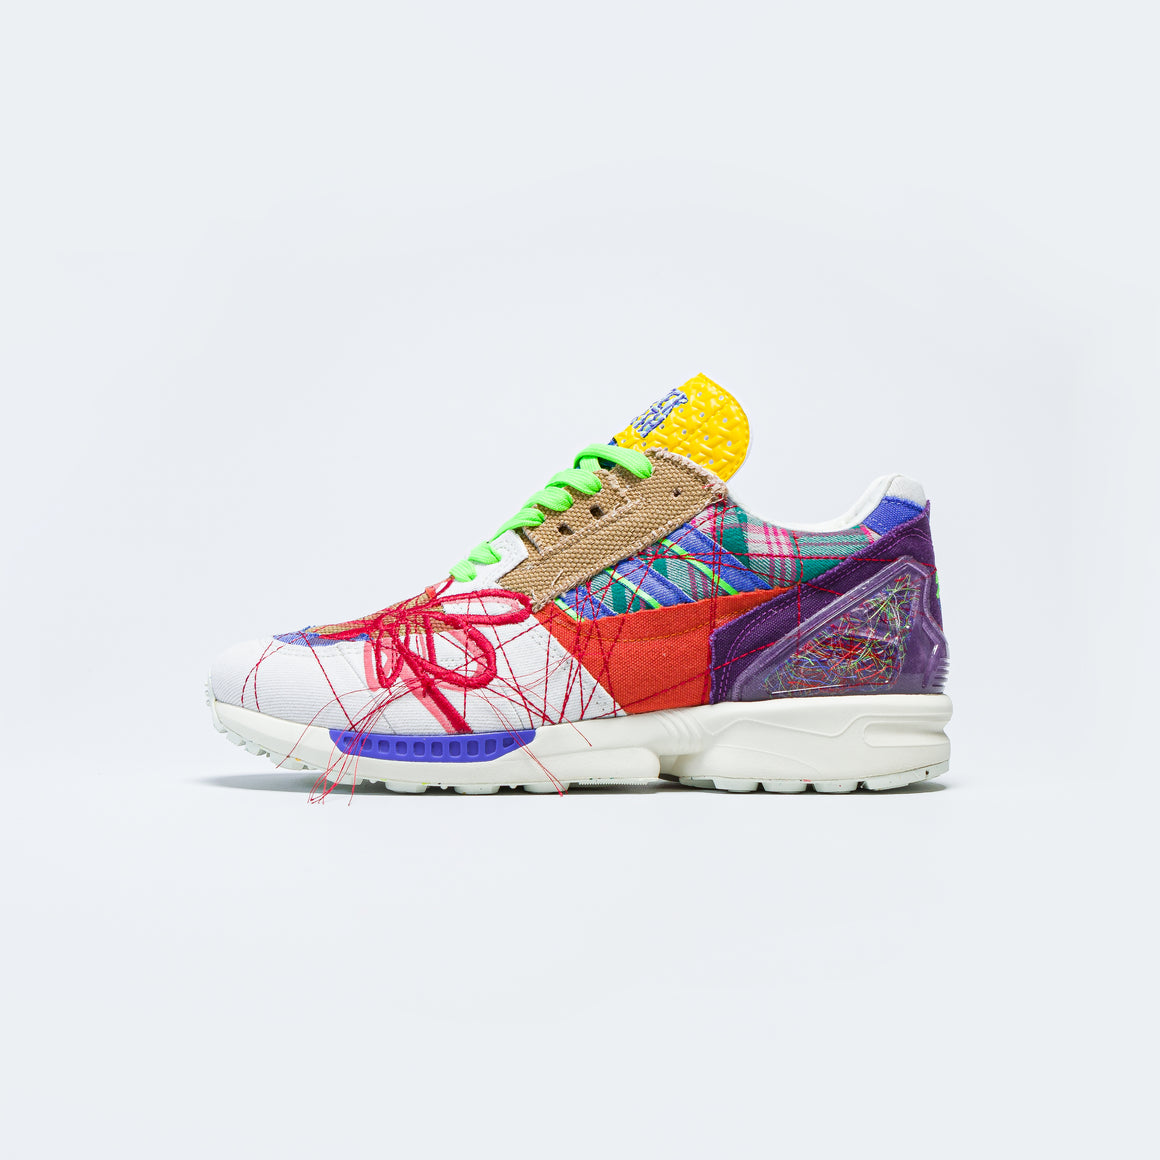 adidas - ZX 8000 x SW - Superearth - Up There